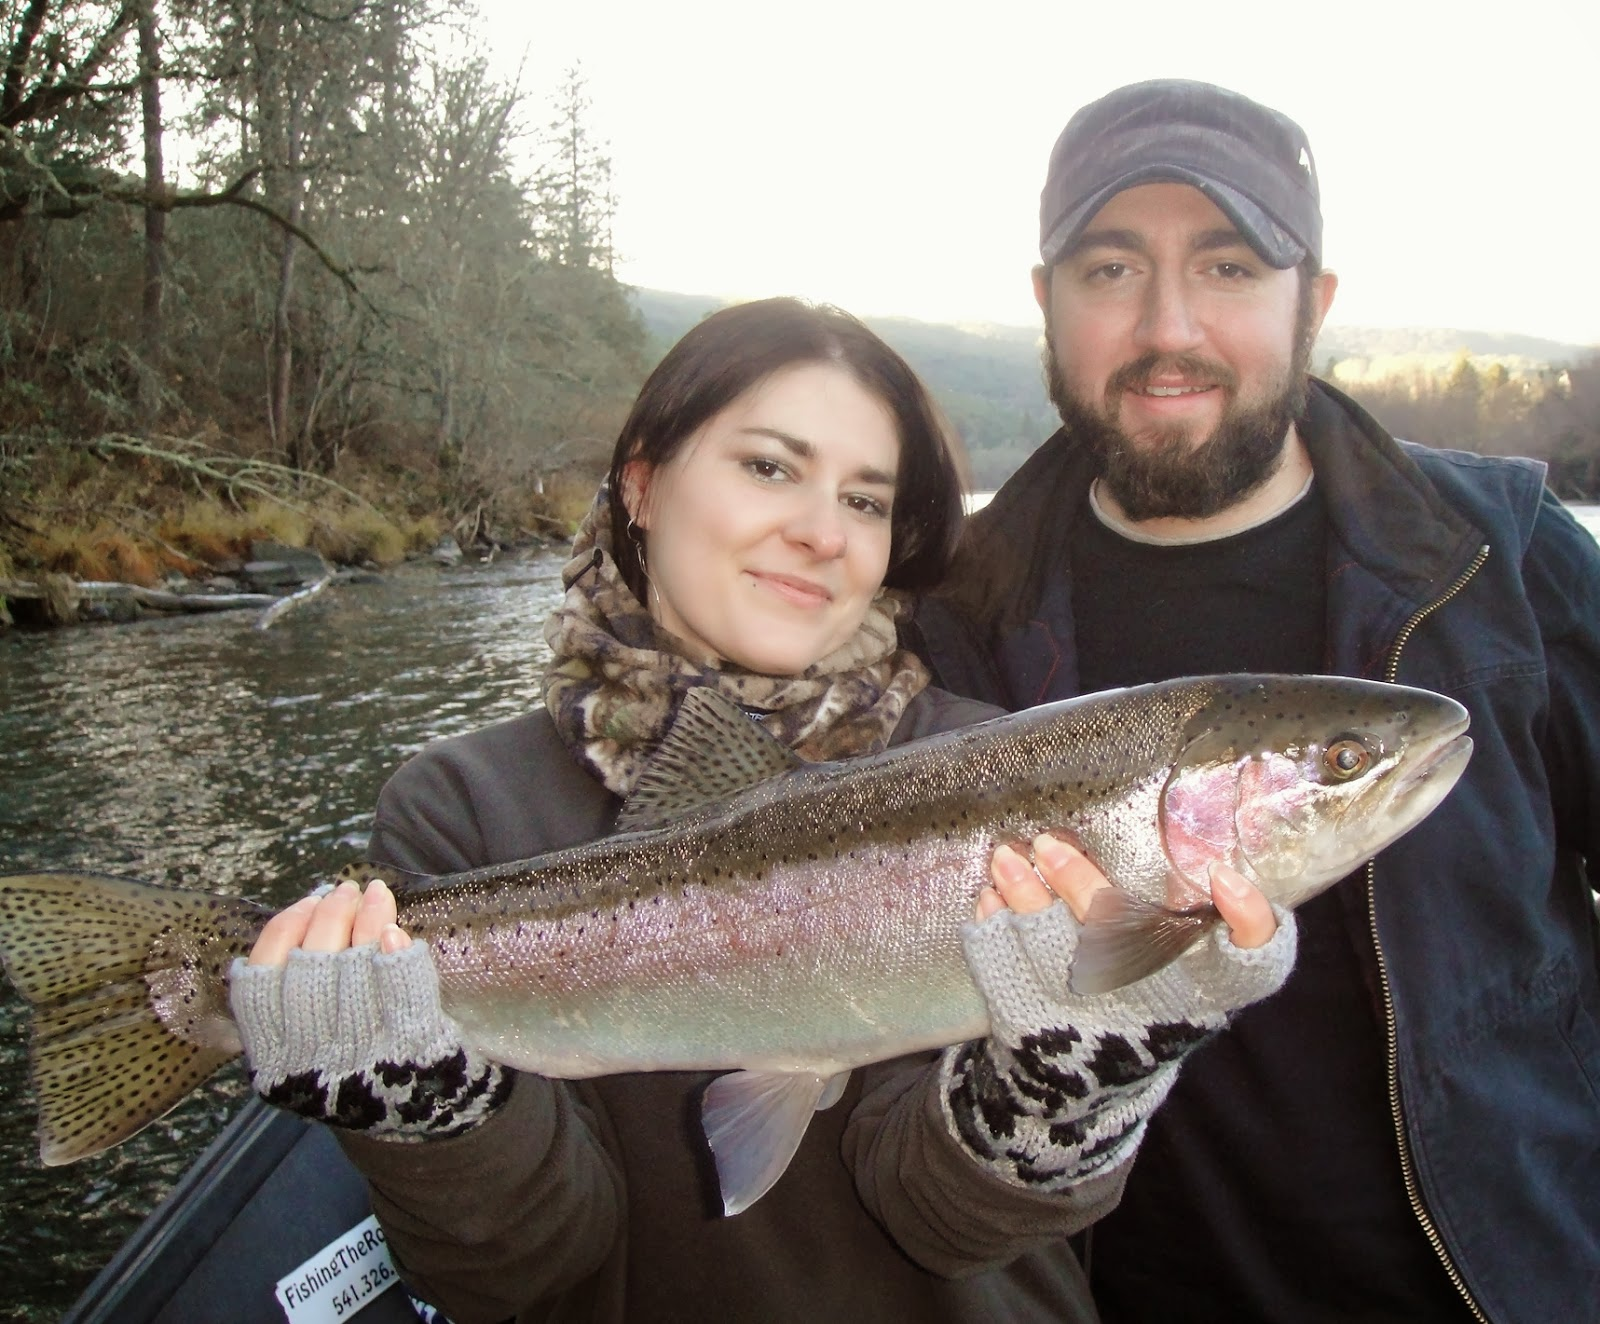 fishing report-Rogue river-steelhead-fishing guide-fishing trip-Oregon